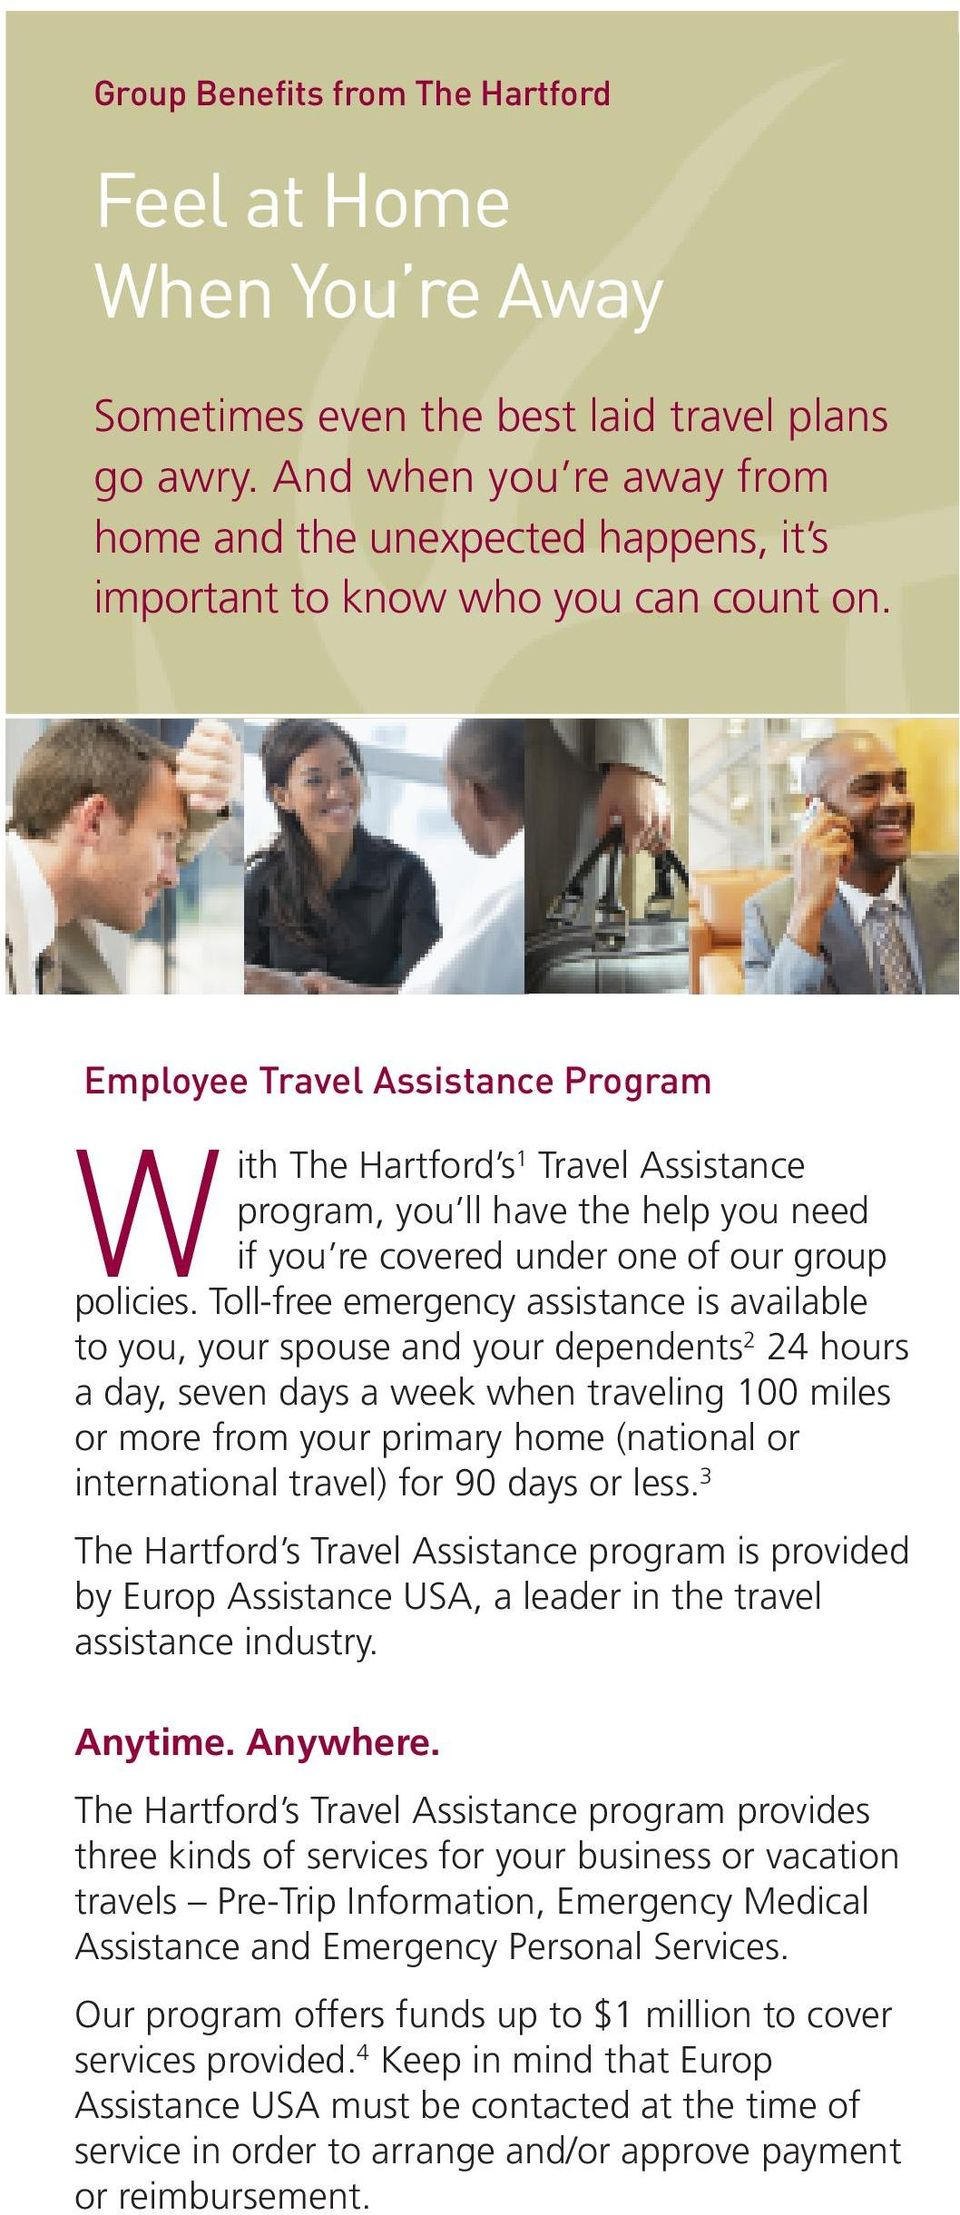 Employee Travel Assistance Program With The Hartford s1 Travel Assistance program, you ll have the help you need if you re covered under one of our group policies.